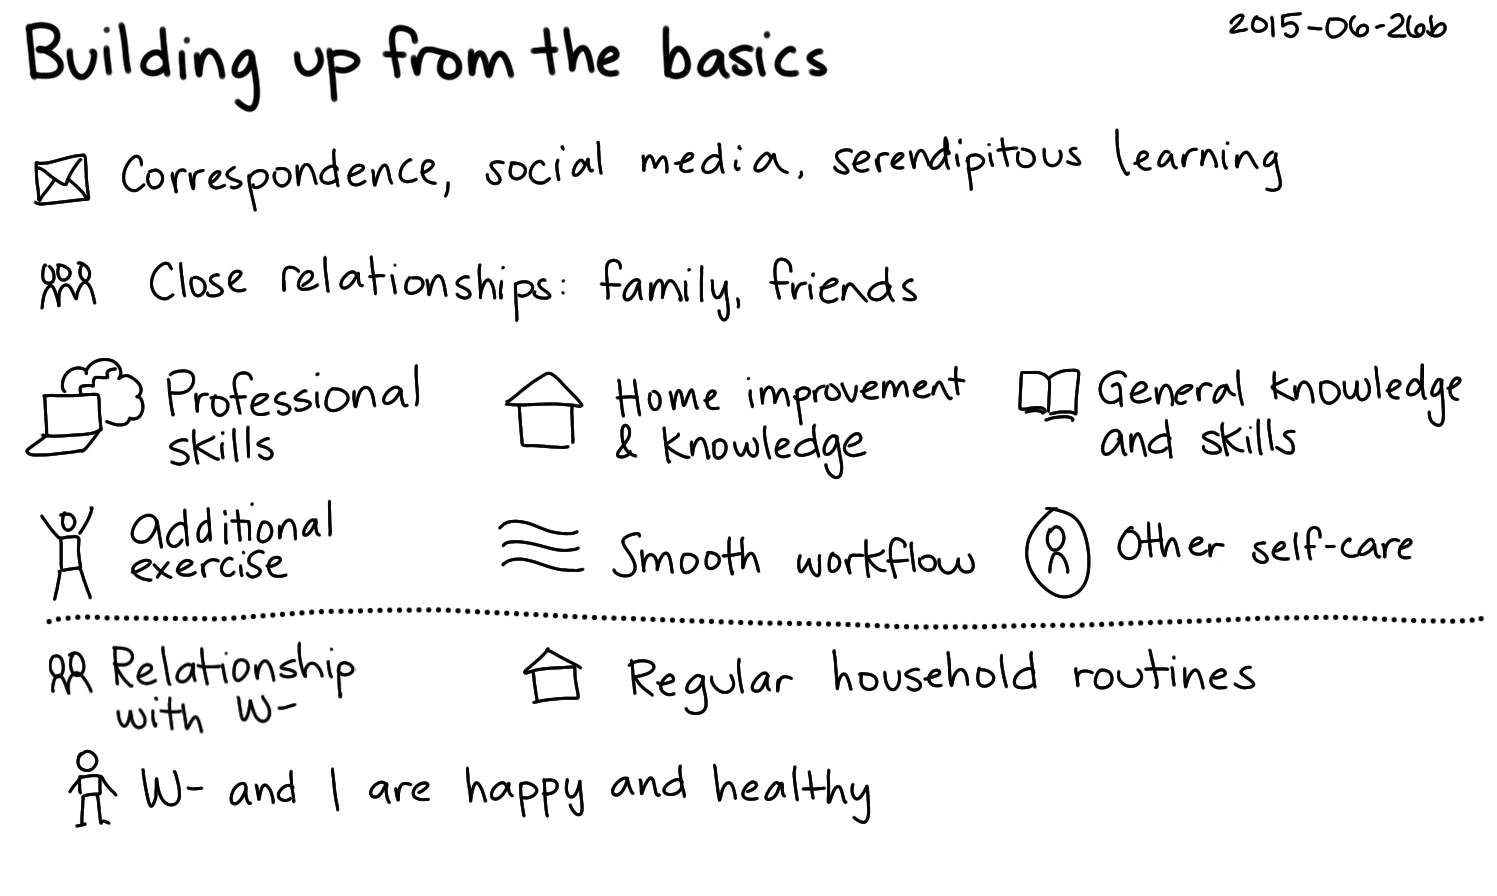 2015-06-26b Building up from the basics -- index card #life.png